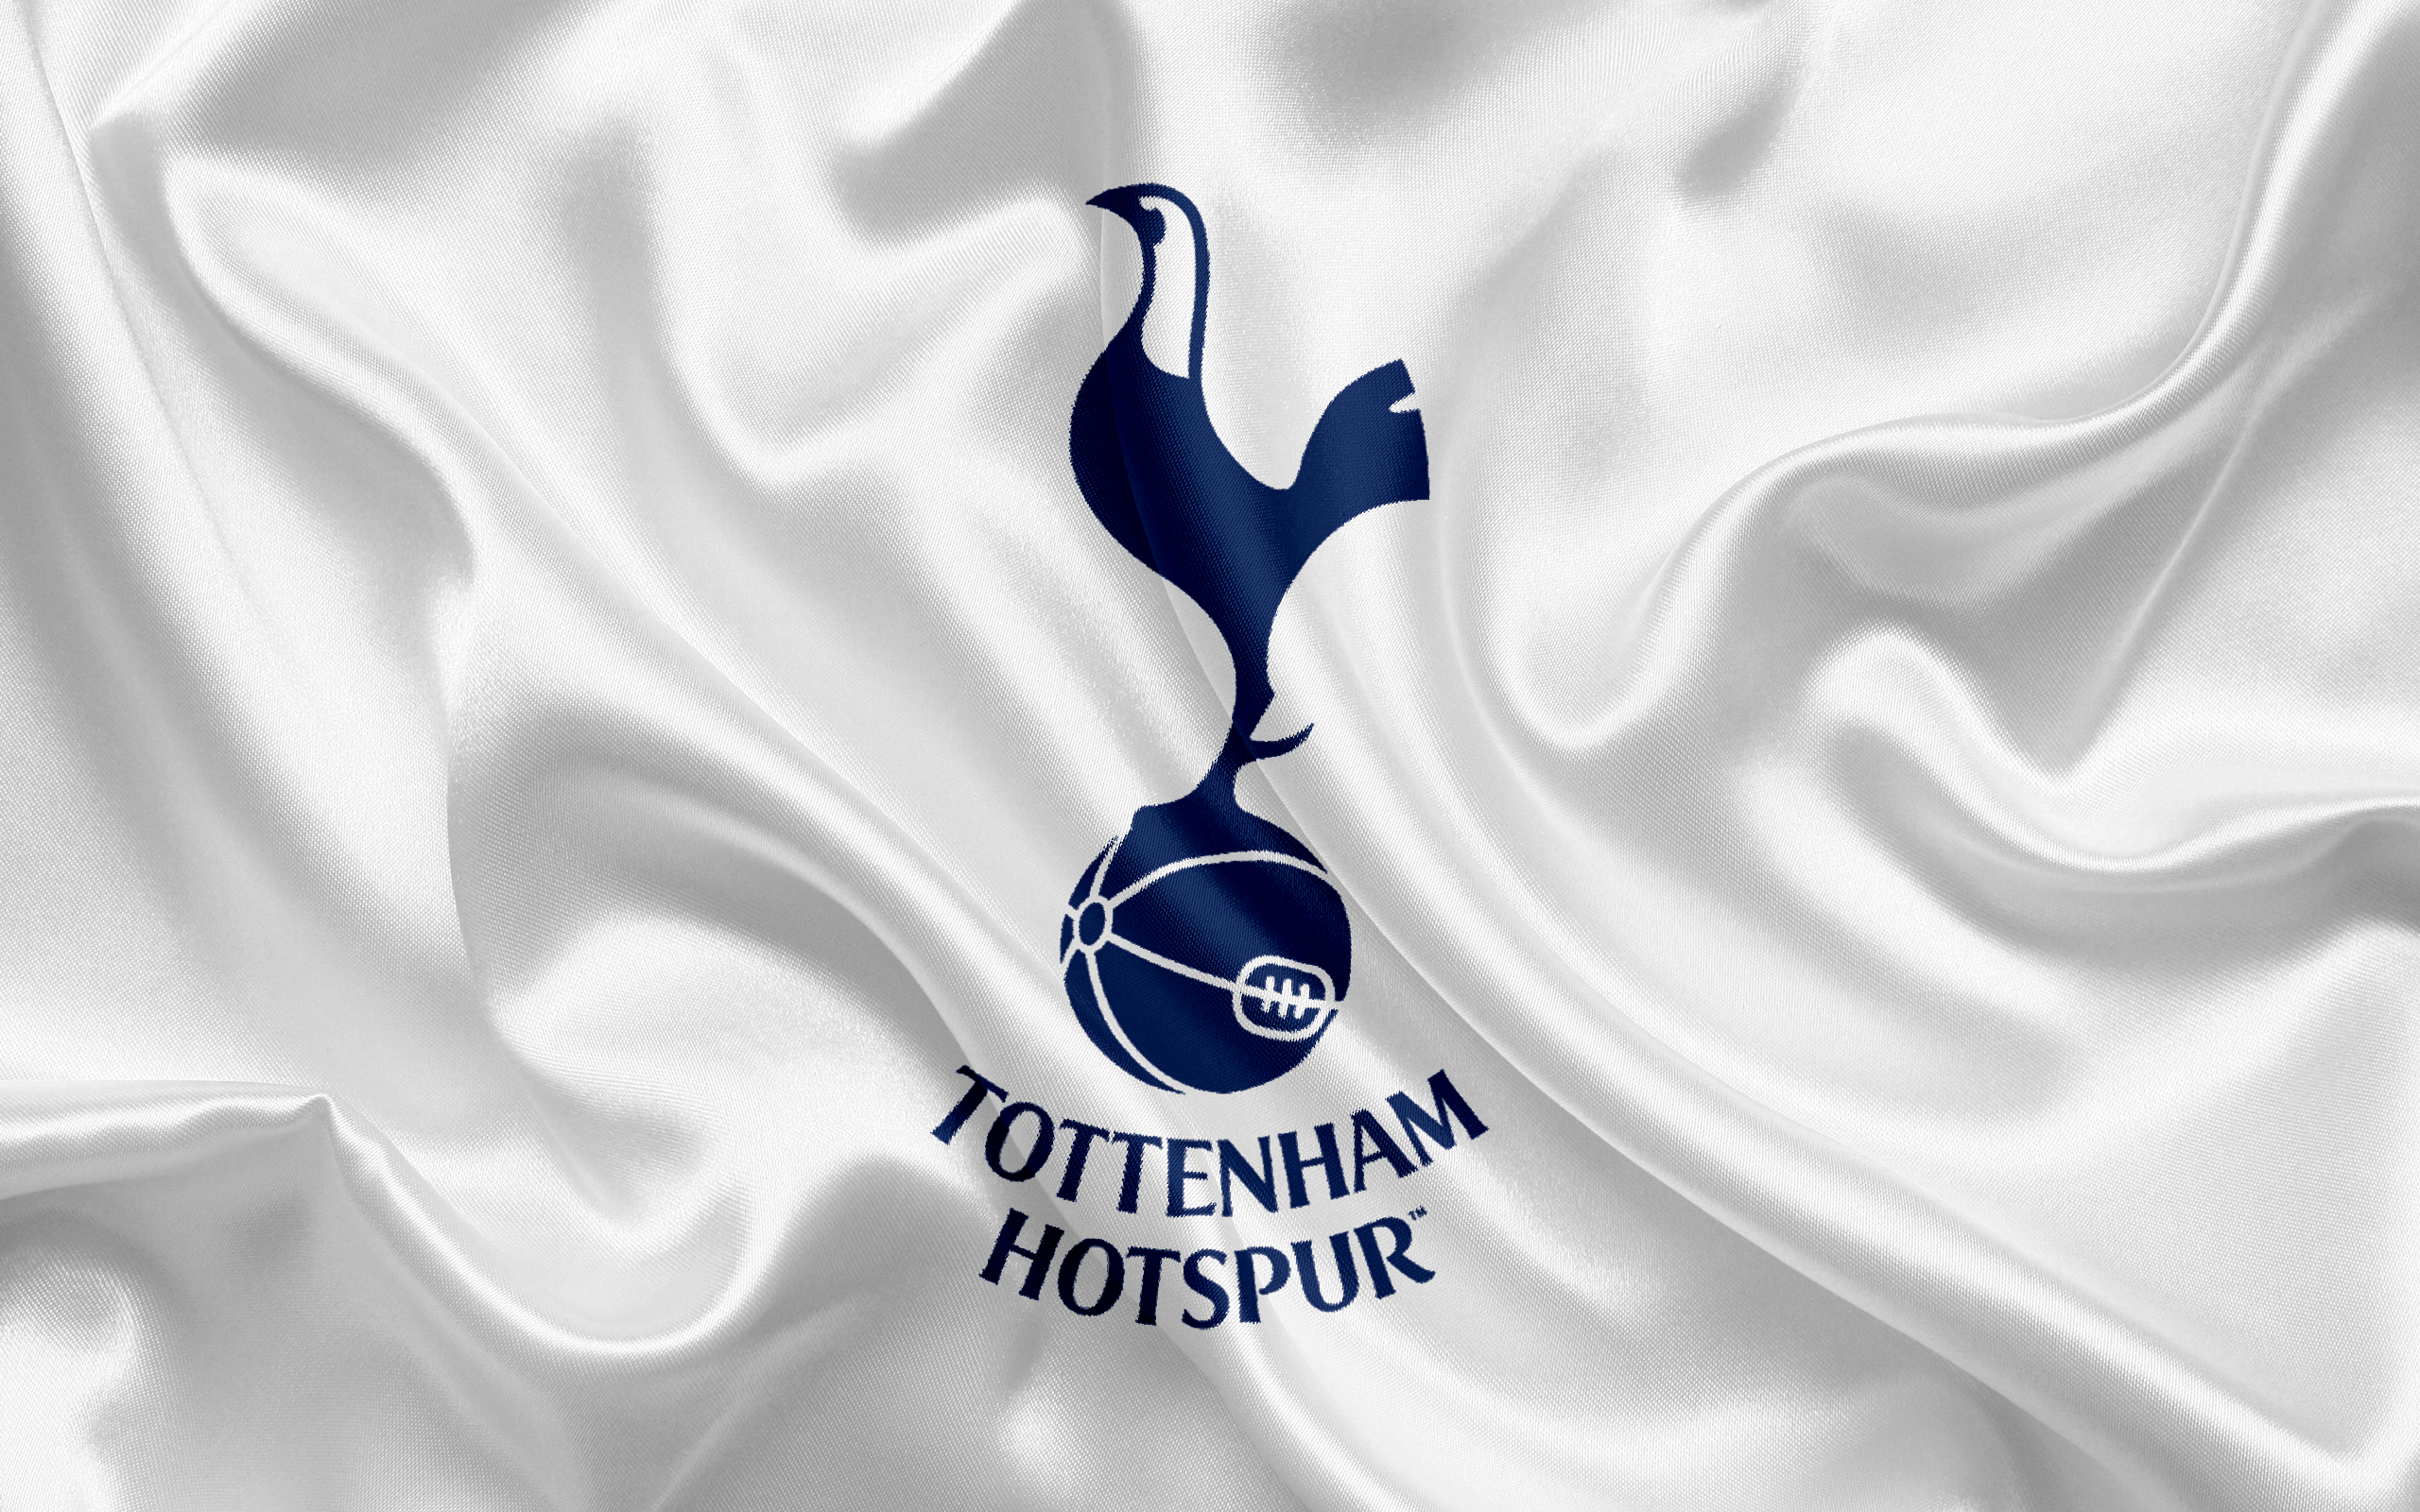 tottenham-hotspur-football-club-premier-league-football-tottenham.jpg